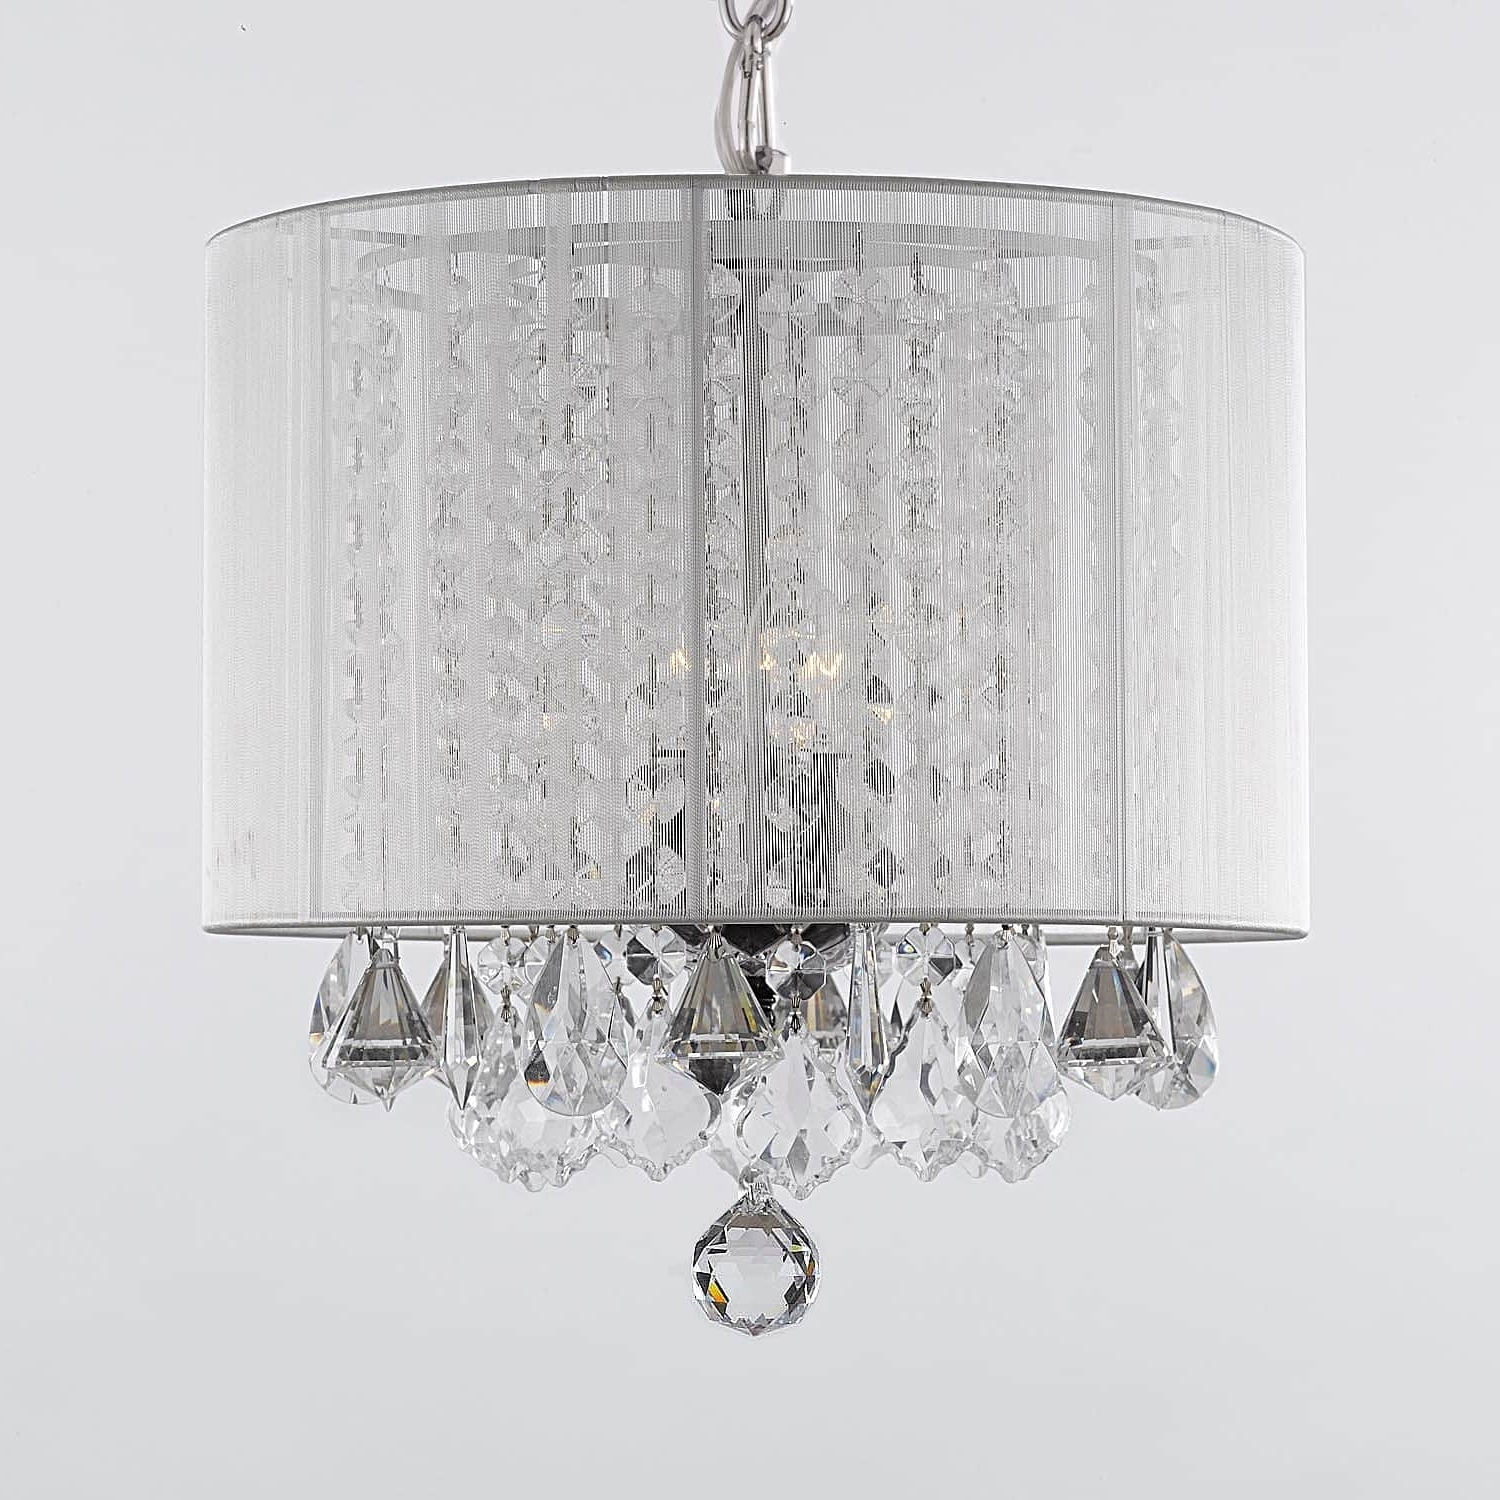 3 Light Crystal Chandeliers For Widely Used Gallery 3 Light Crystal Chandelier With Shade – Free Shipping Today (View 2 of 20)